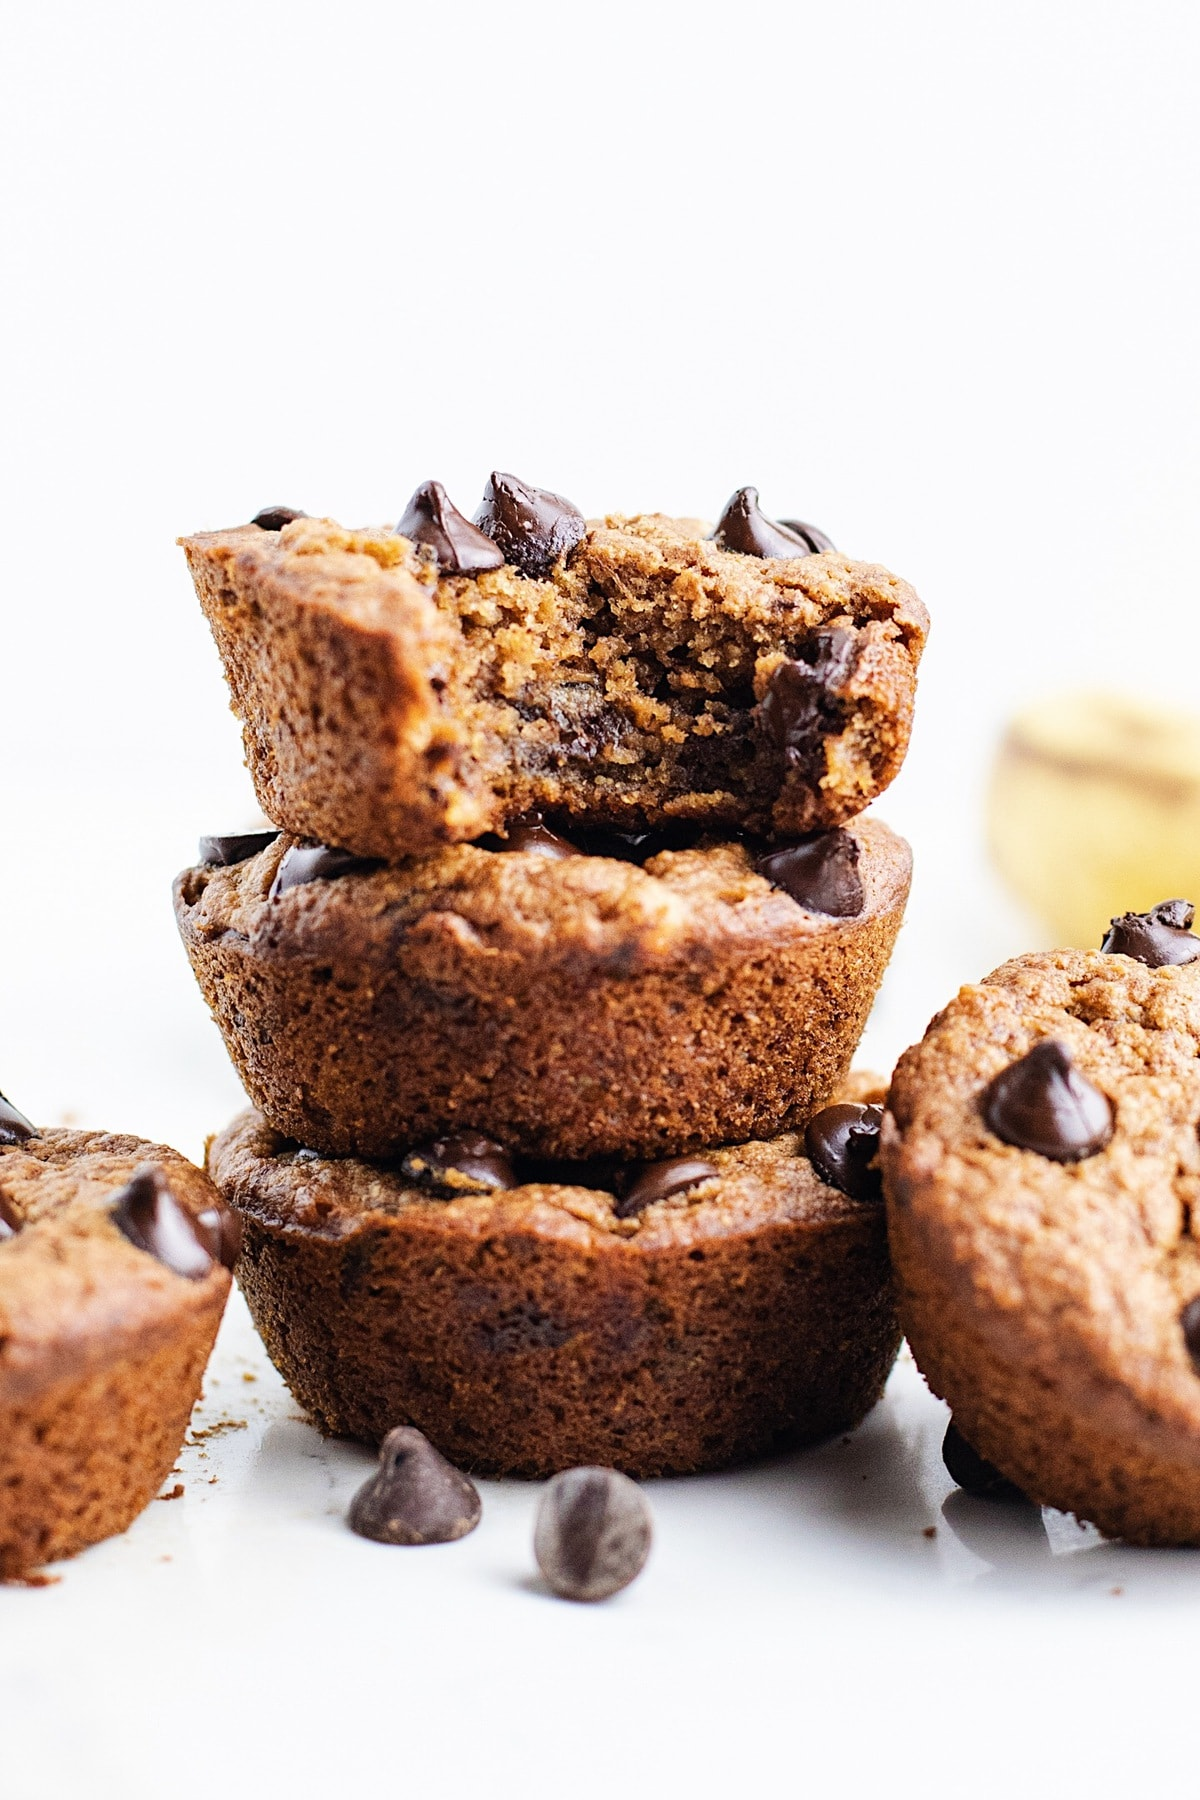 Chocolate chip vegan banana muffins stacked on top of each other one with a bite out of it.